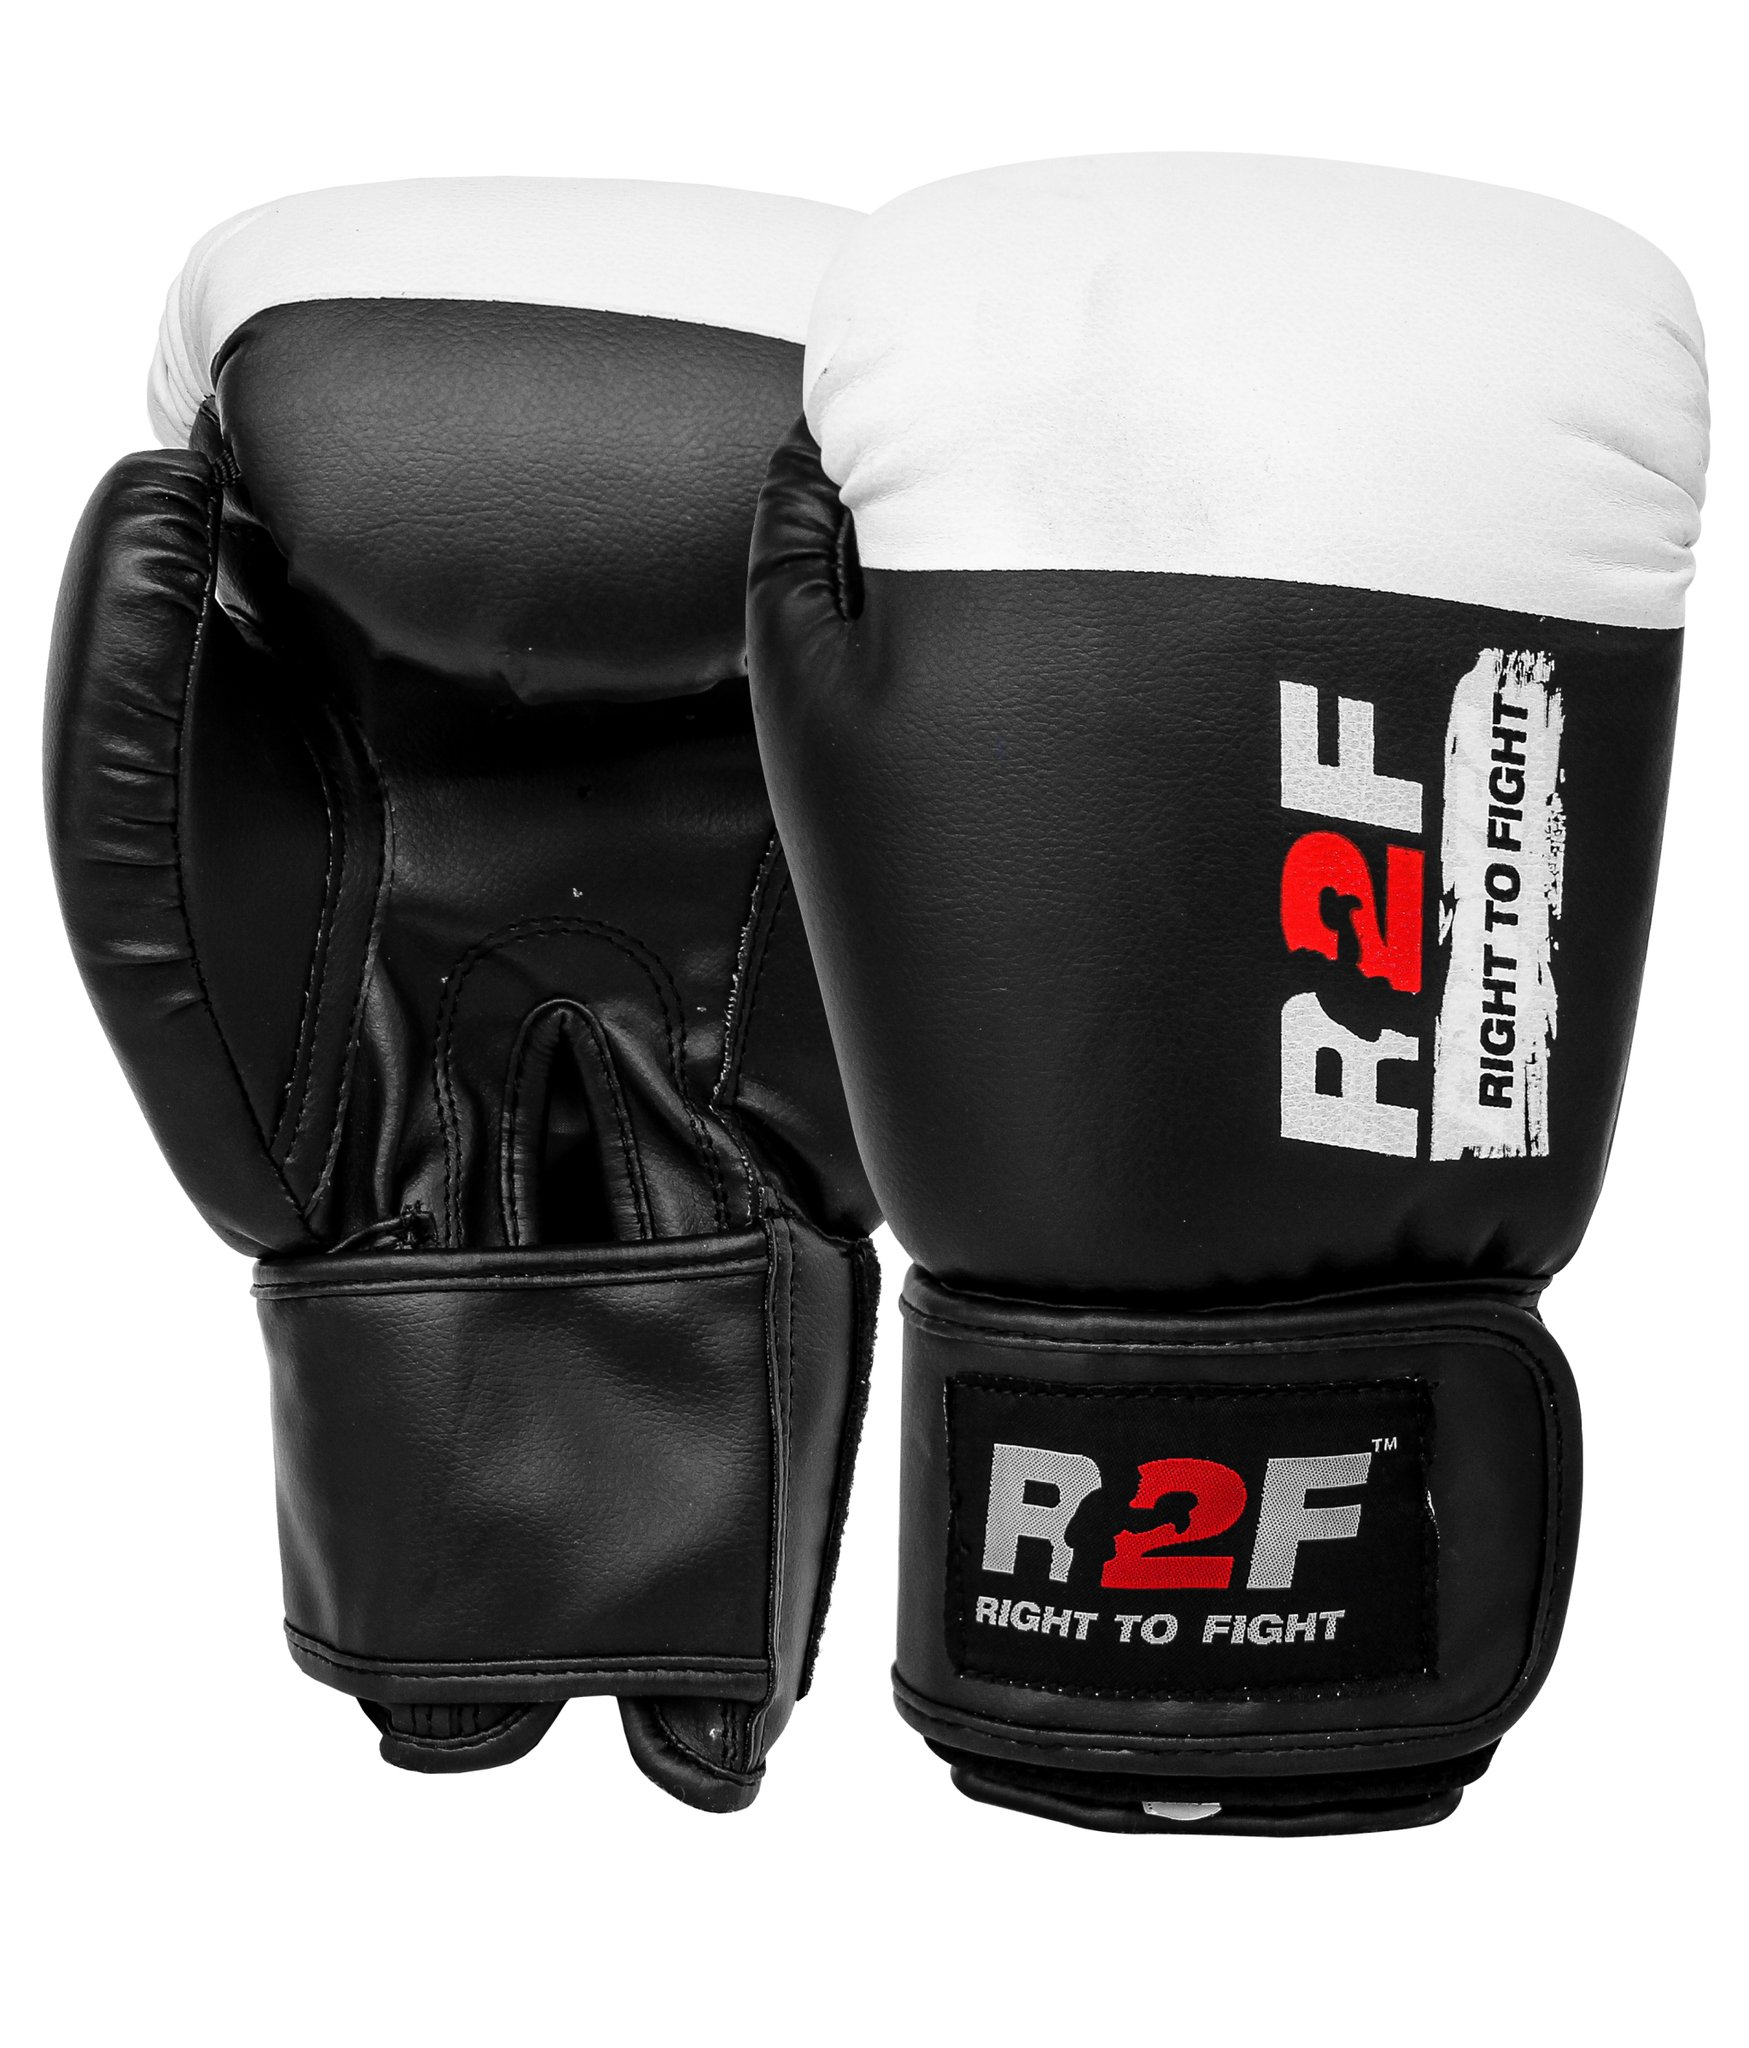 Boxing Gloves Rex Leather Punch Bag MMA Training Sparring Mitts Pro Kick Fight